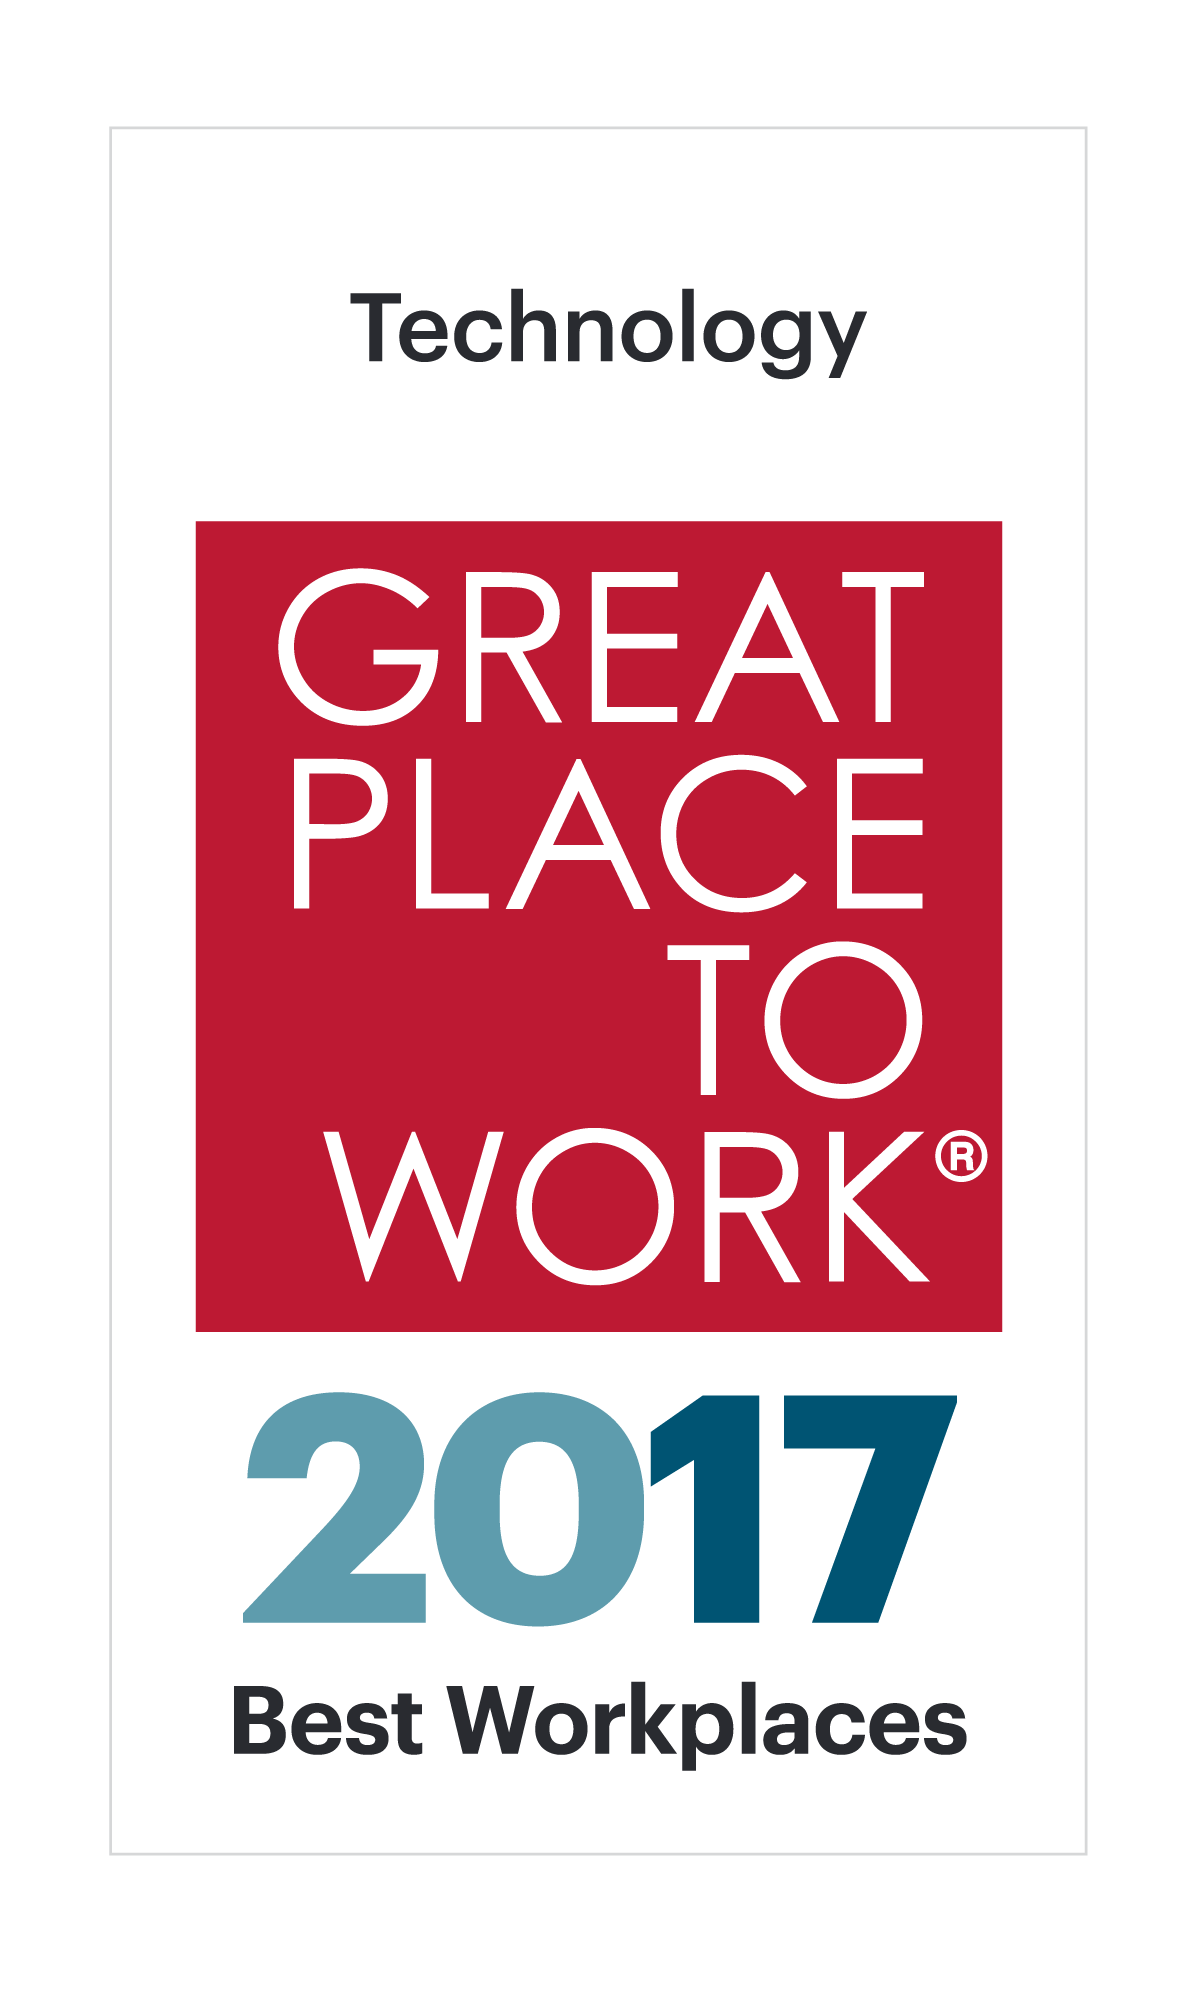 2017 Best Workplace in Technology by Great Places To Work